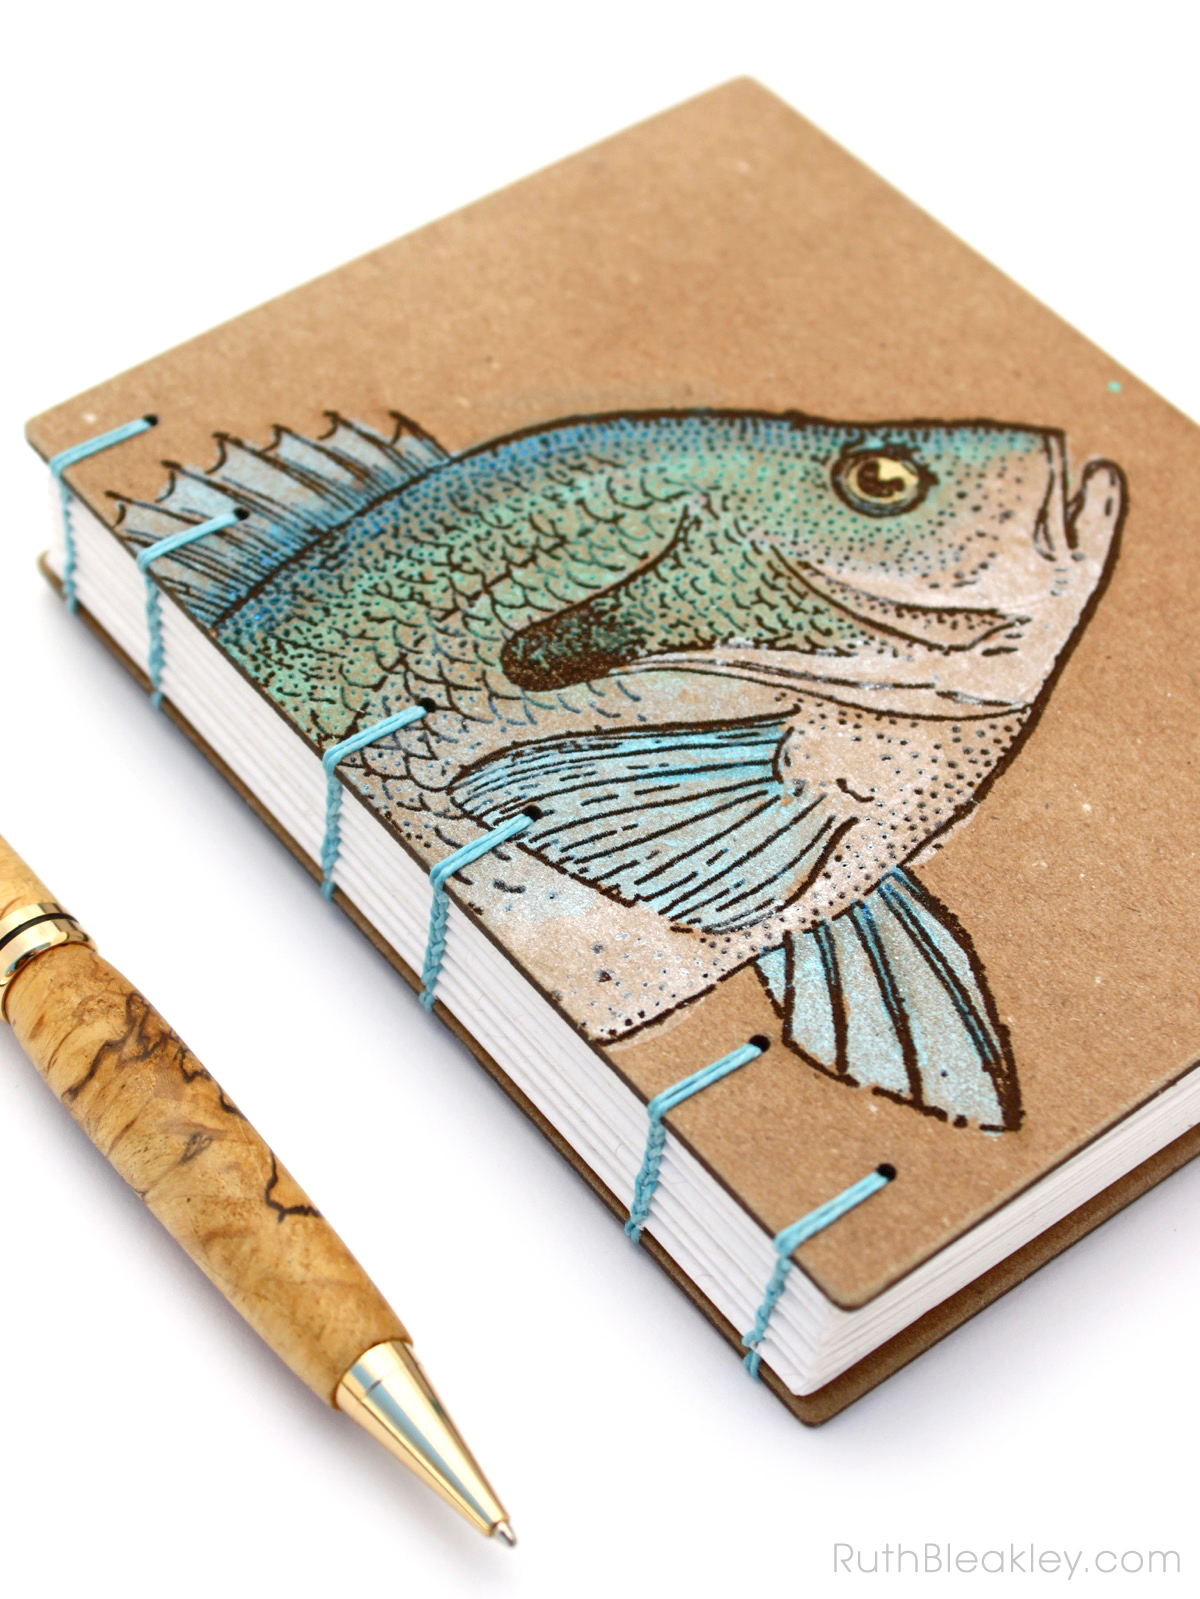 Fish Journal - Hand Painted by Book Artist Ruth Bleakley - 2